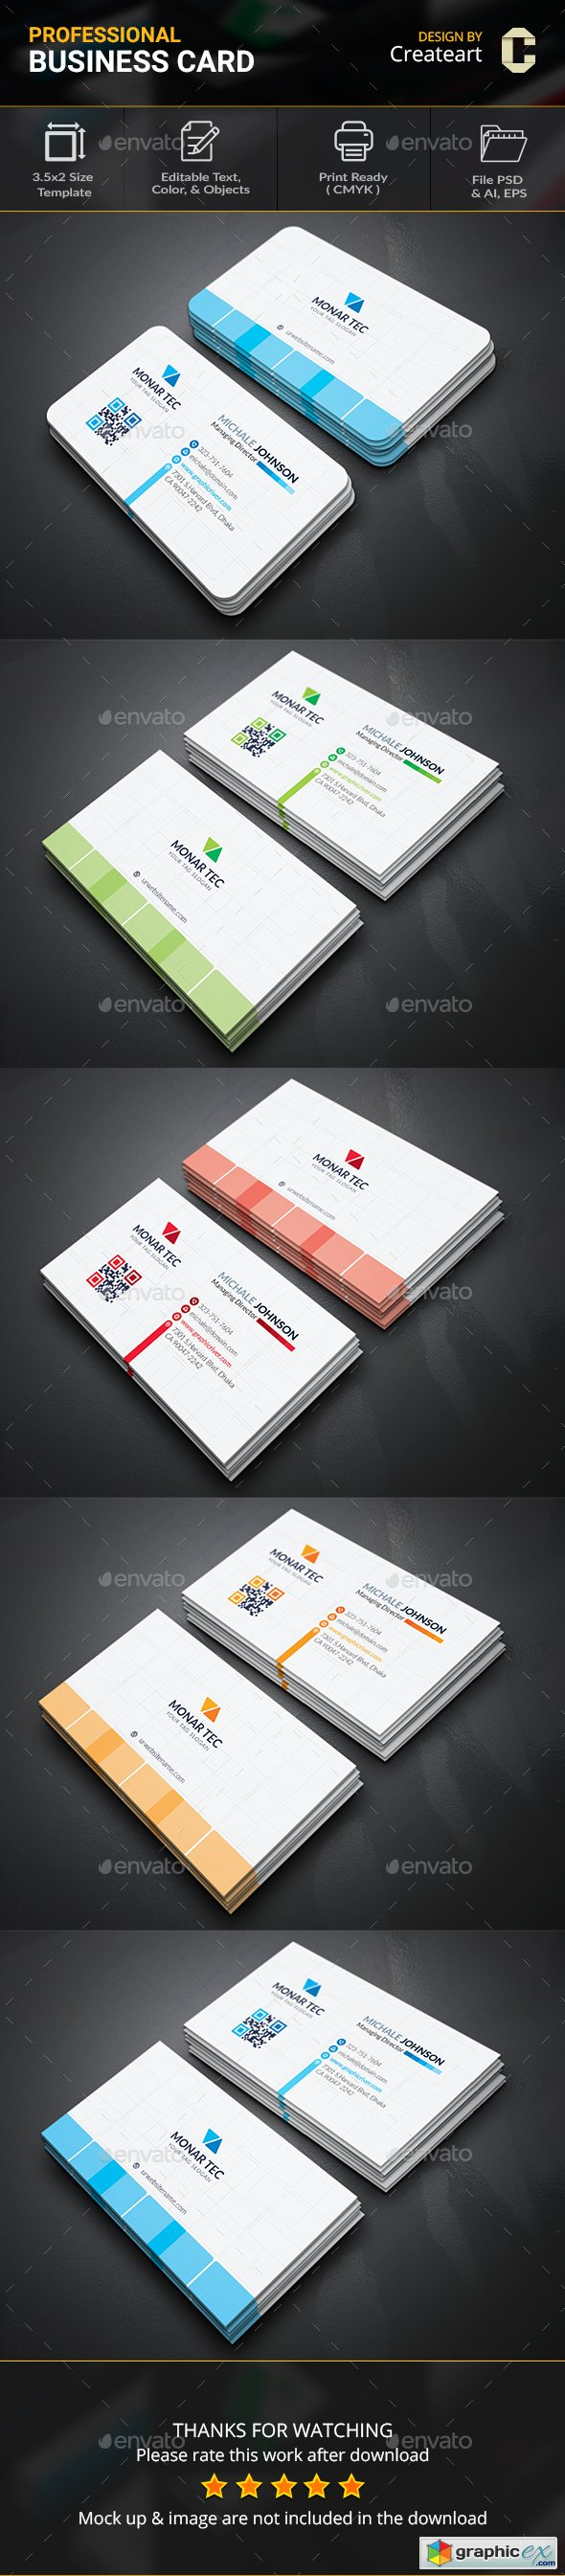 Graphicriver Business Card 20063545